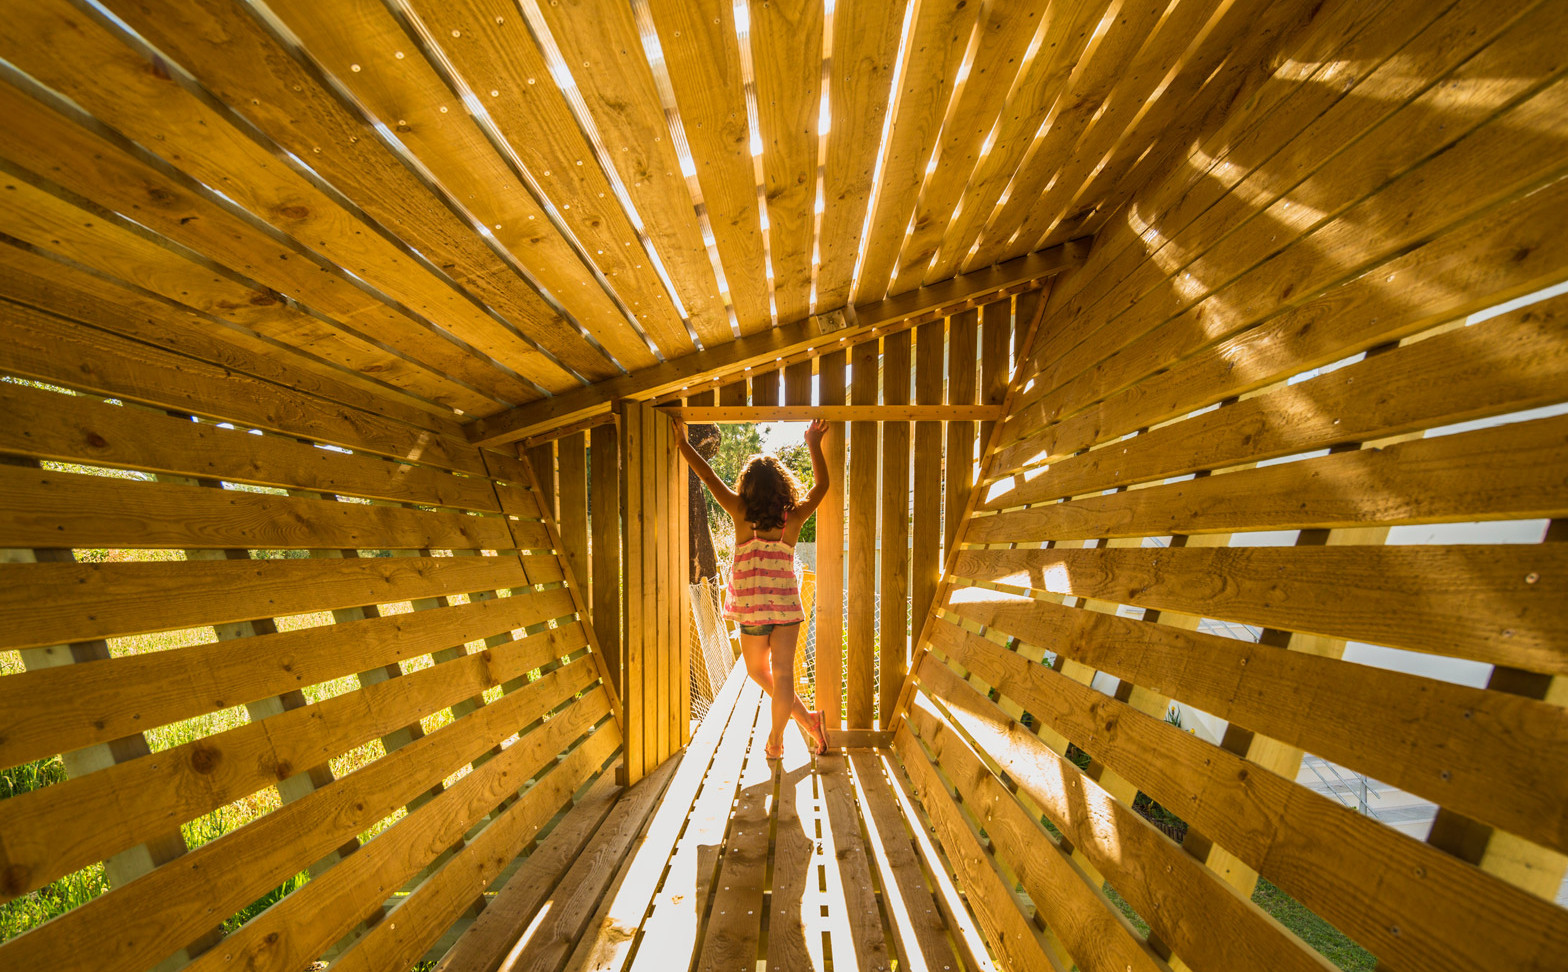 casa-no-muro-saperlipopette-les-architectes-martial-marquet-architecture-treehouse-wood-children-portugal_dezeen_1568_0